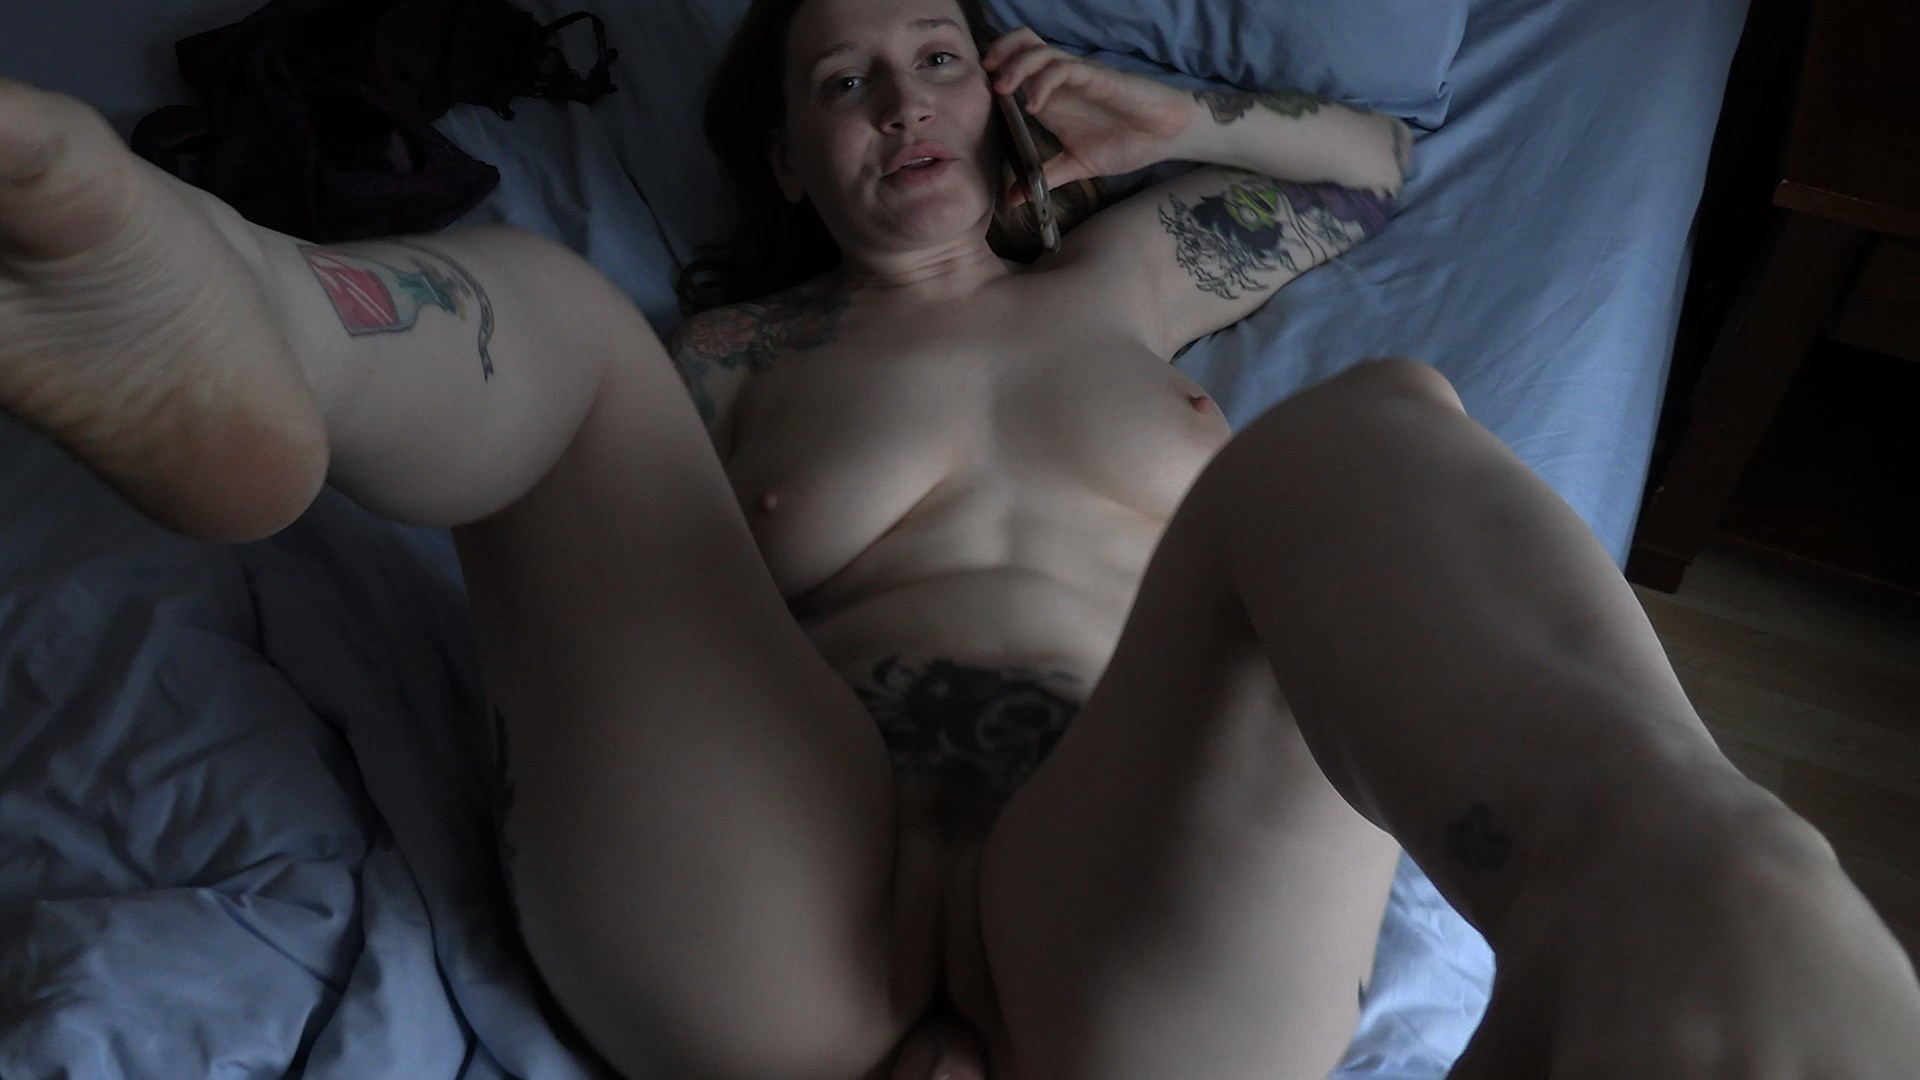 Bettie Bondage - Morning Sex with Mom